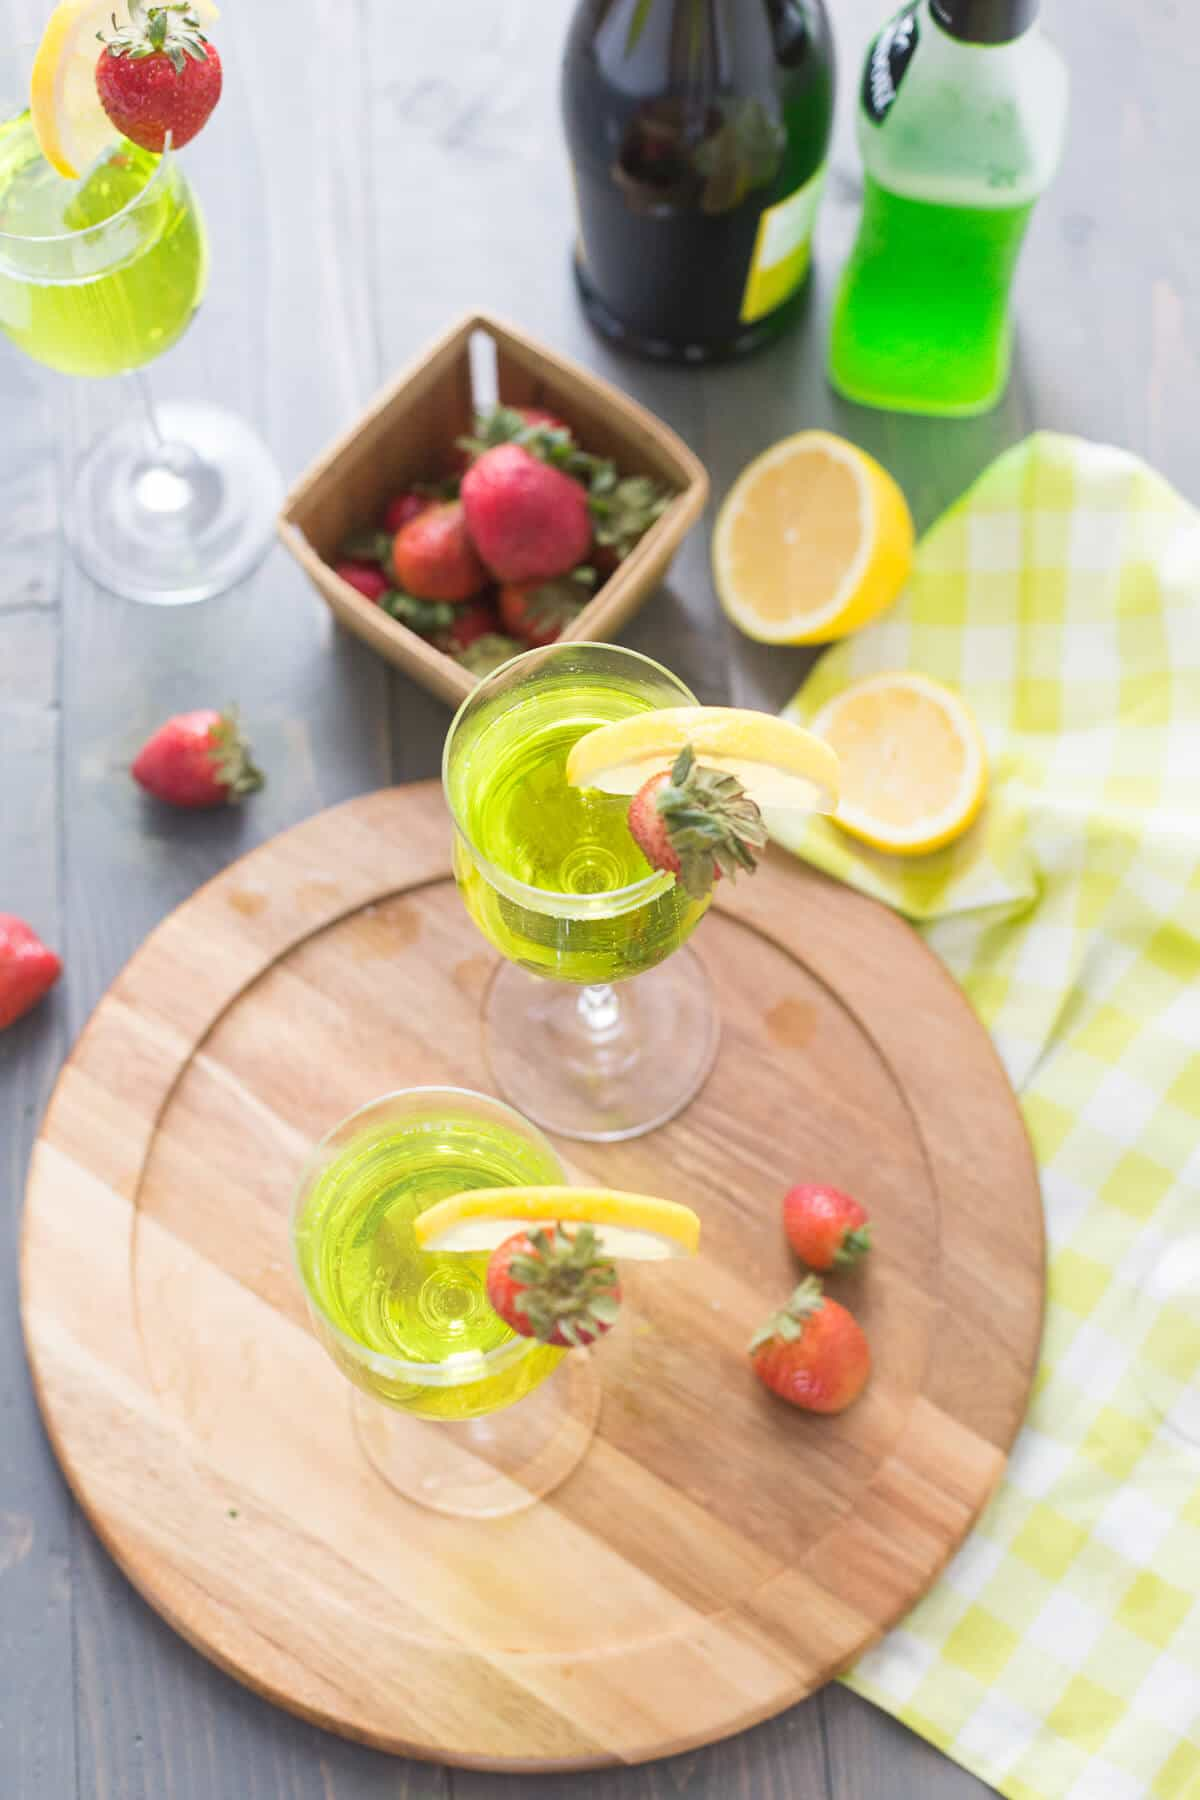 This Irish cocktail is festive and effervescent! Prosecco and Midori are a dynamic duo!